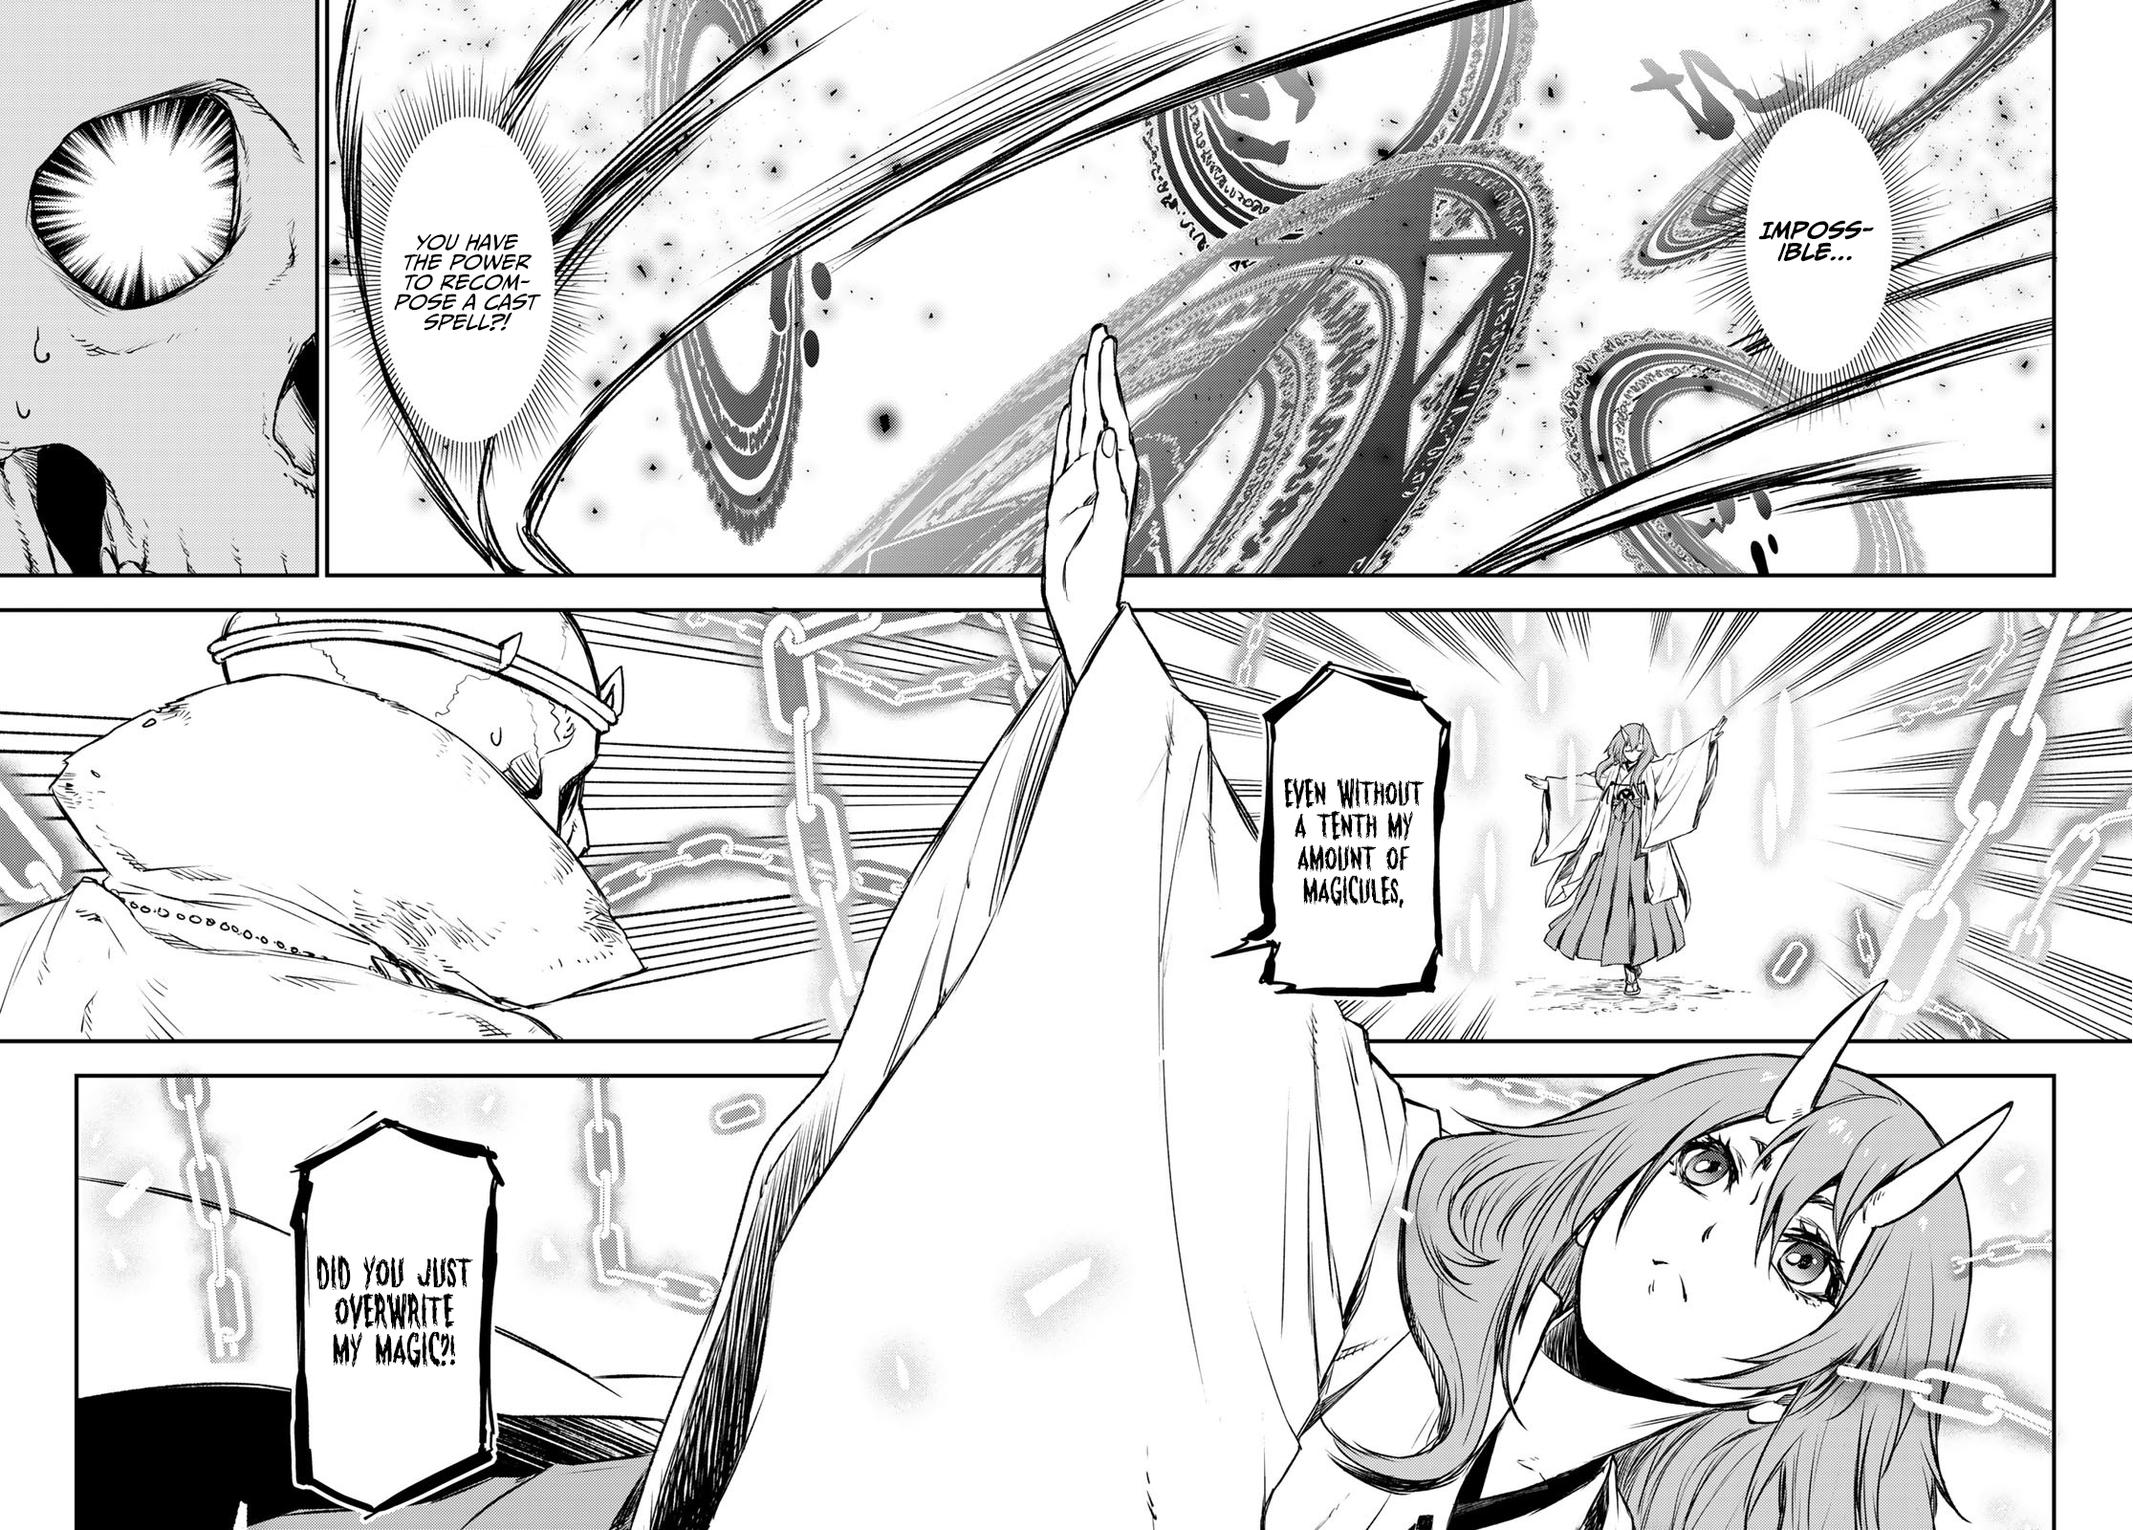 That Time I Got Reincarnated As A Slime, Chapter 81 image 060